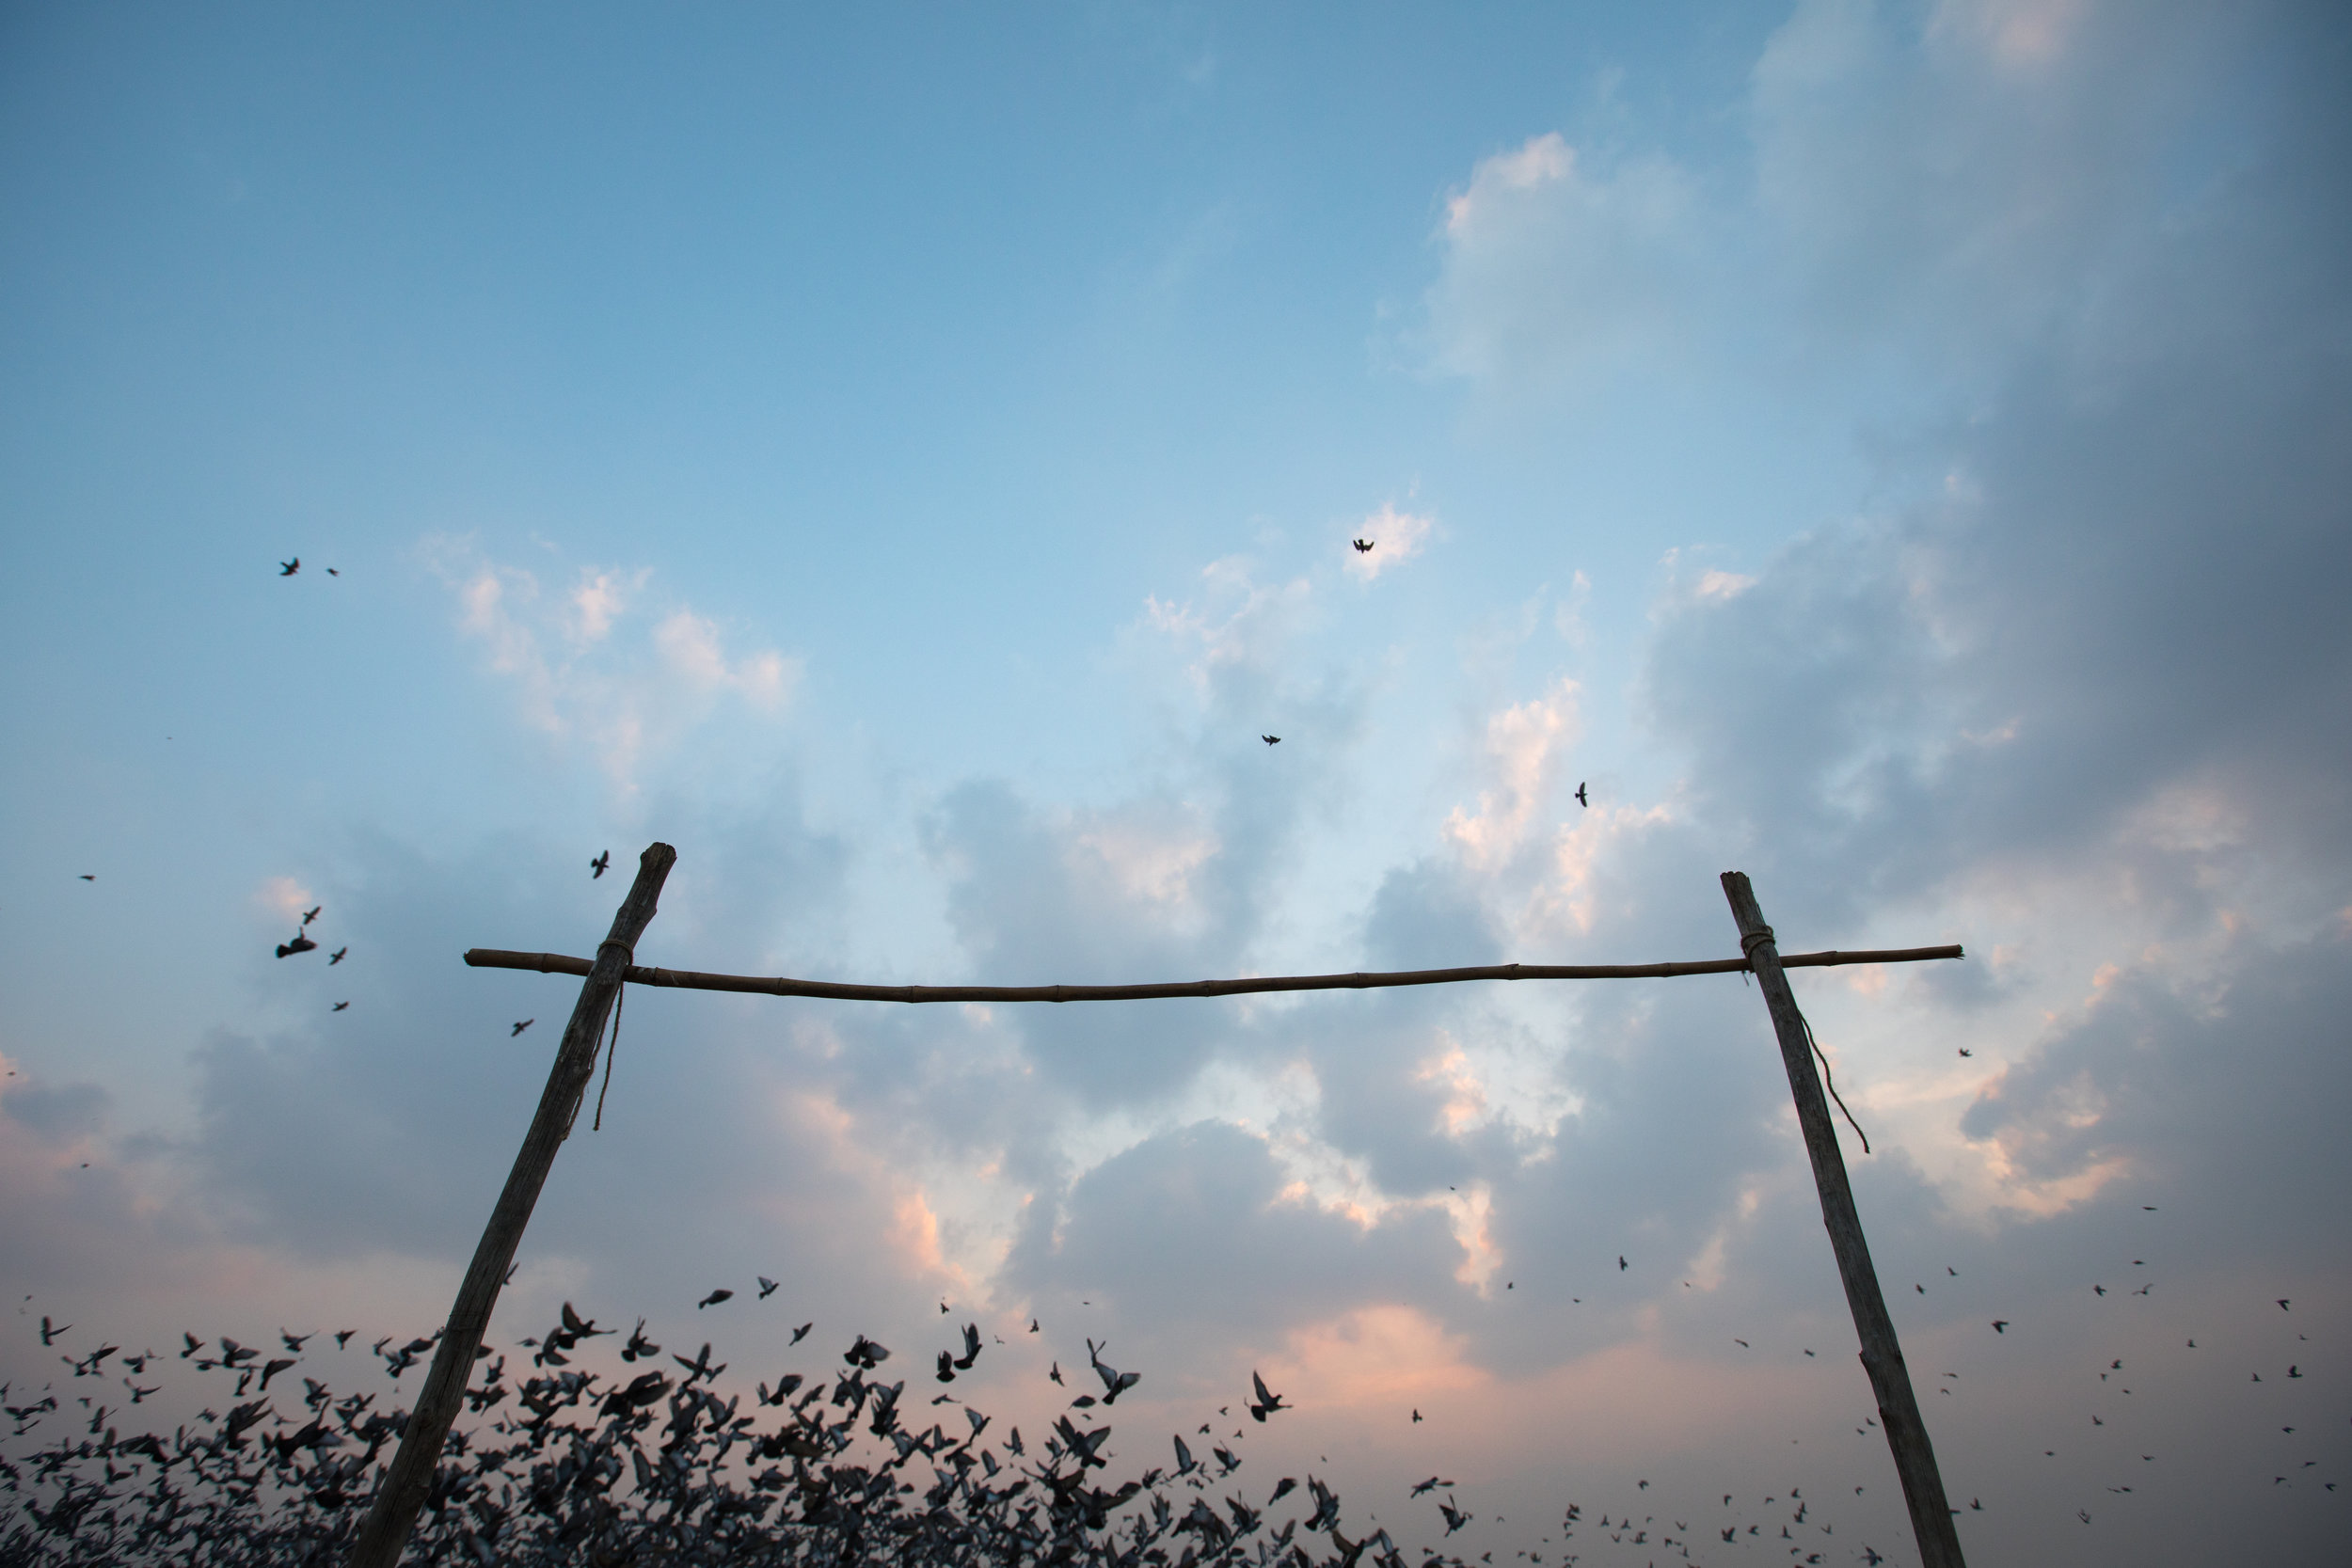 Thousands of birds take off behind a makeshift goal post on the beach in India.